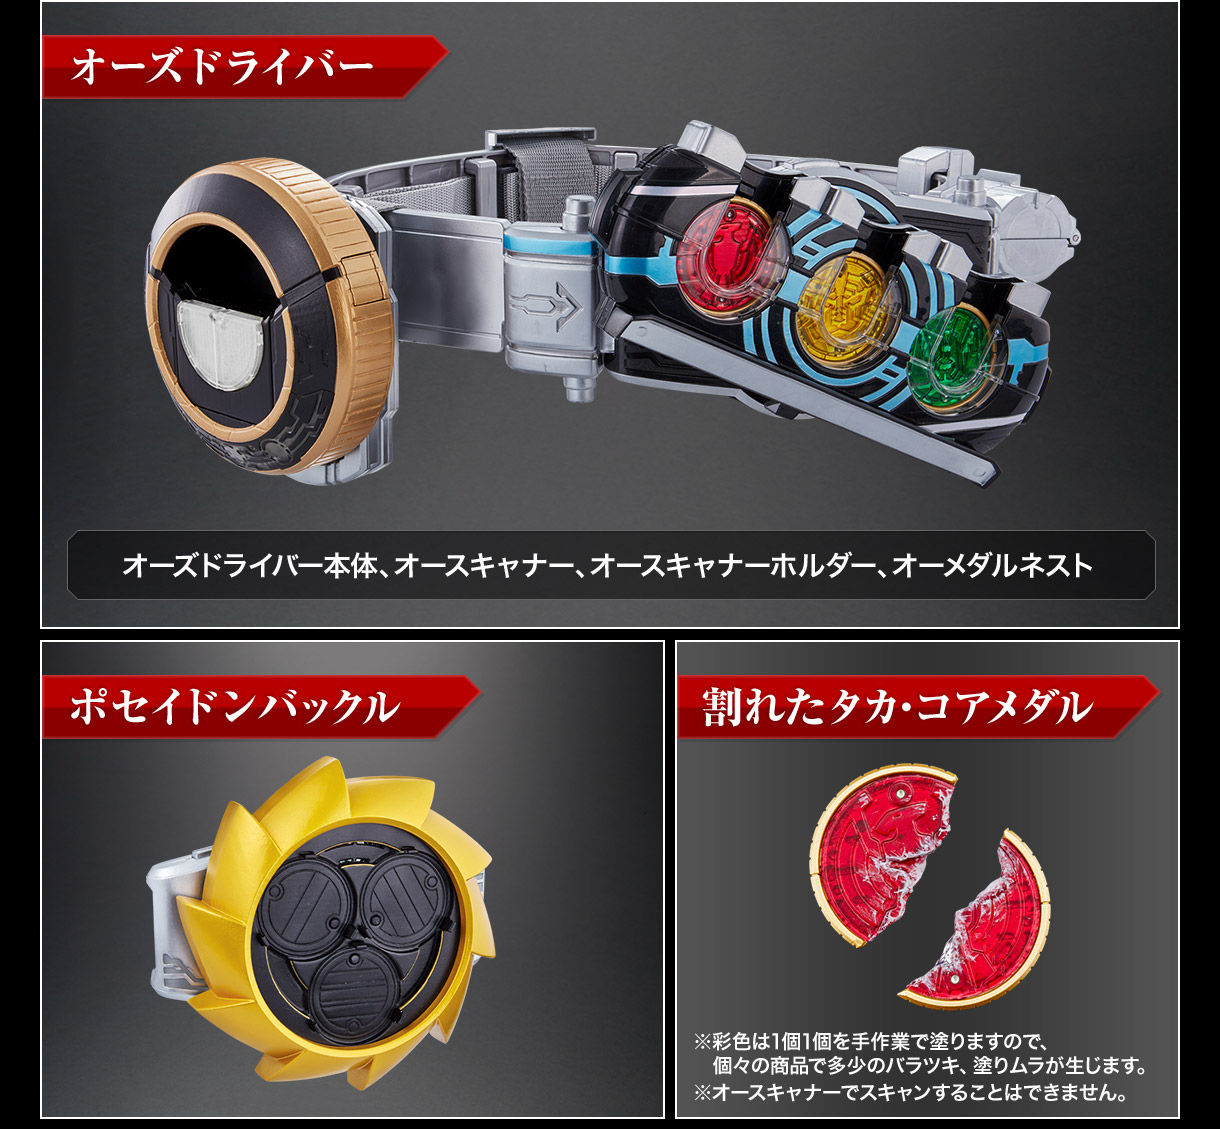 COMPLETE SELECTION MODIFICATION OOO DRIVER COMPLETE SET(CSMオーズドライバーコンプリートセット)-001